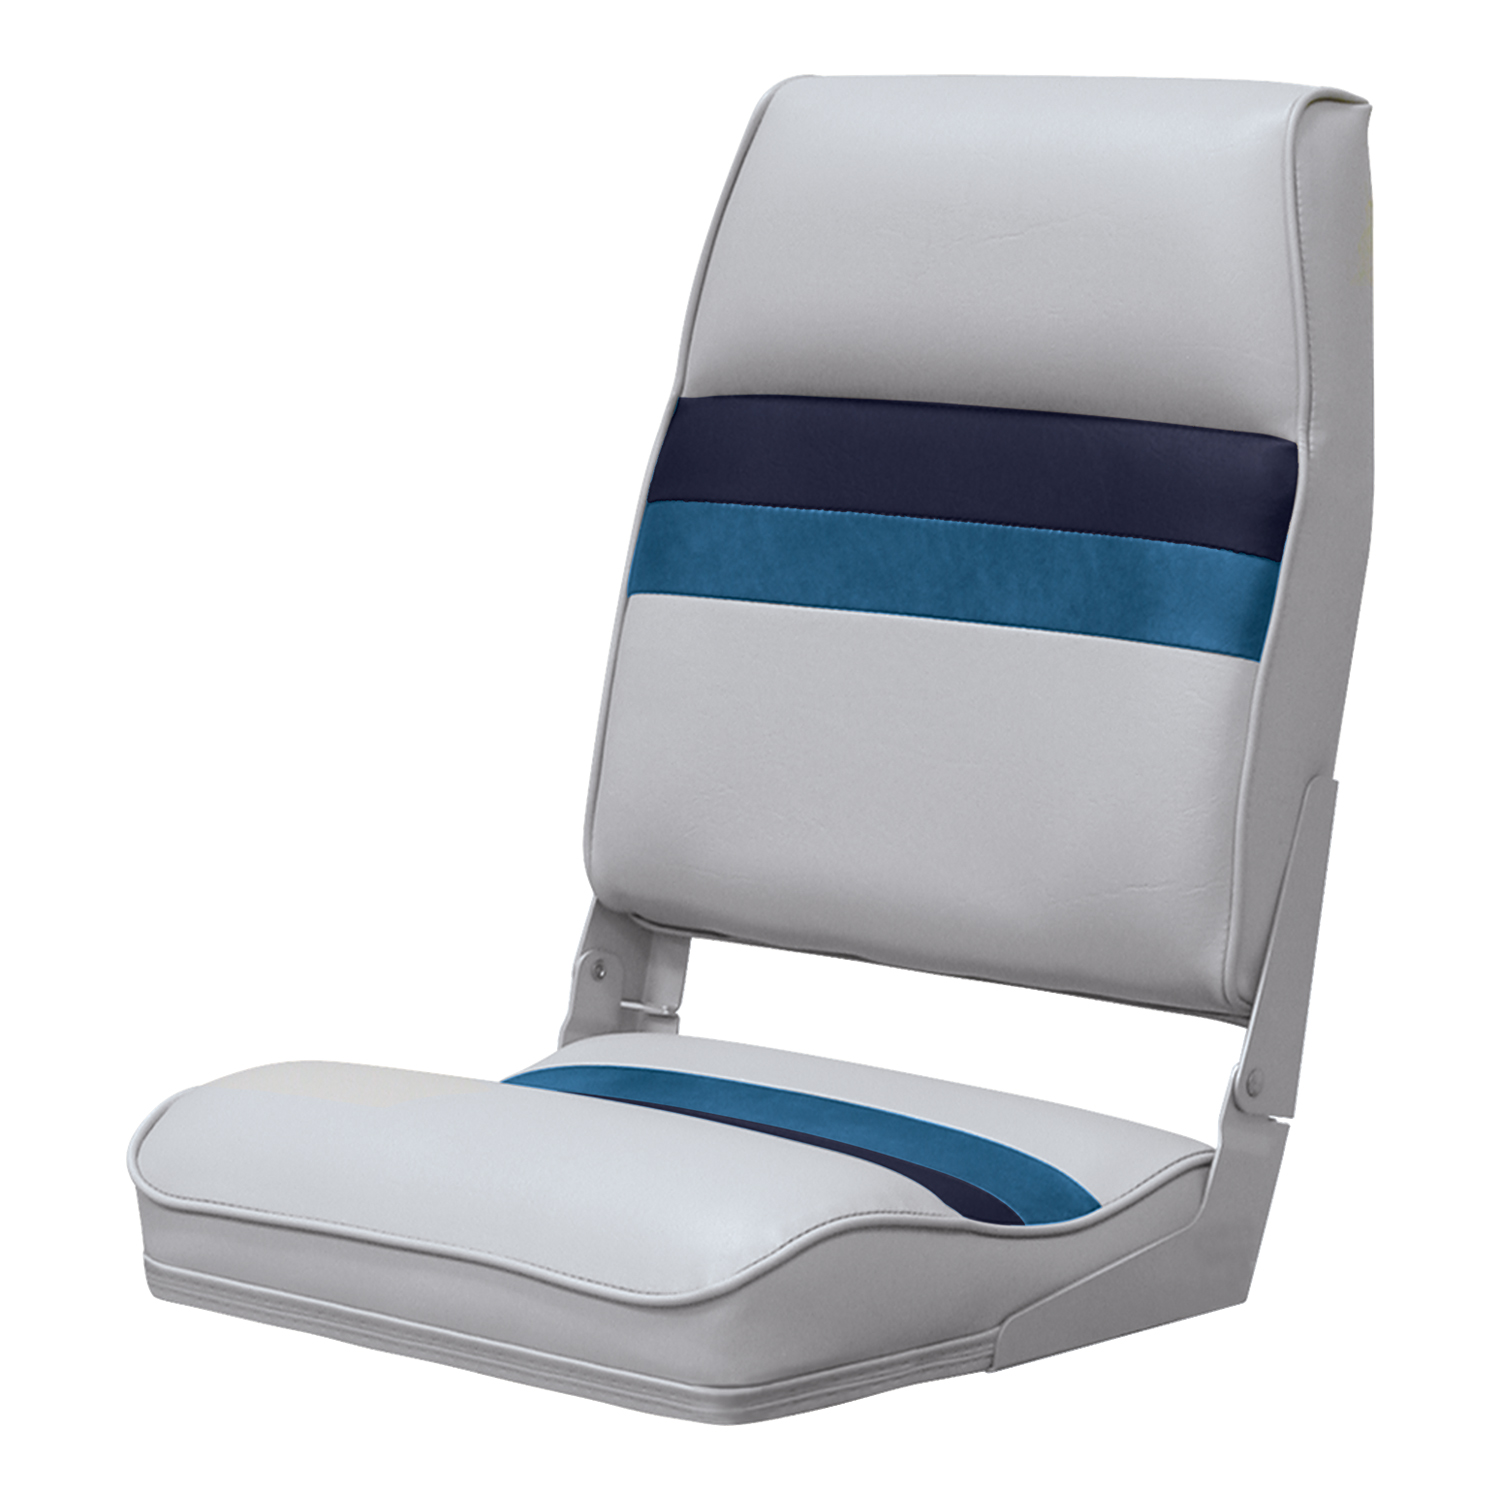 Wise 8WD434LS-1010 Deluxe Pontoon Series High Back Seat, Grey/Navy/Blue